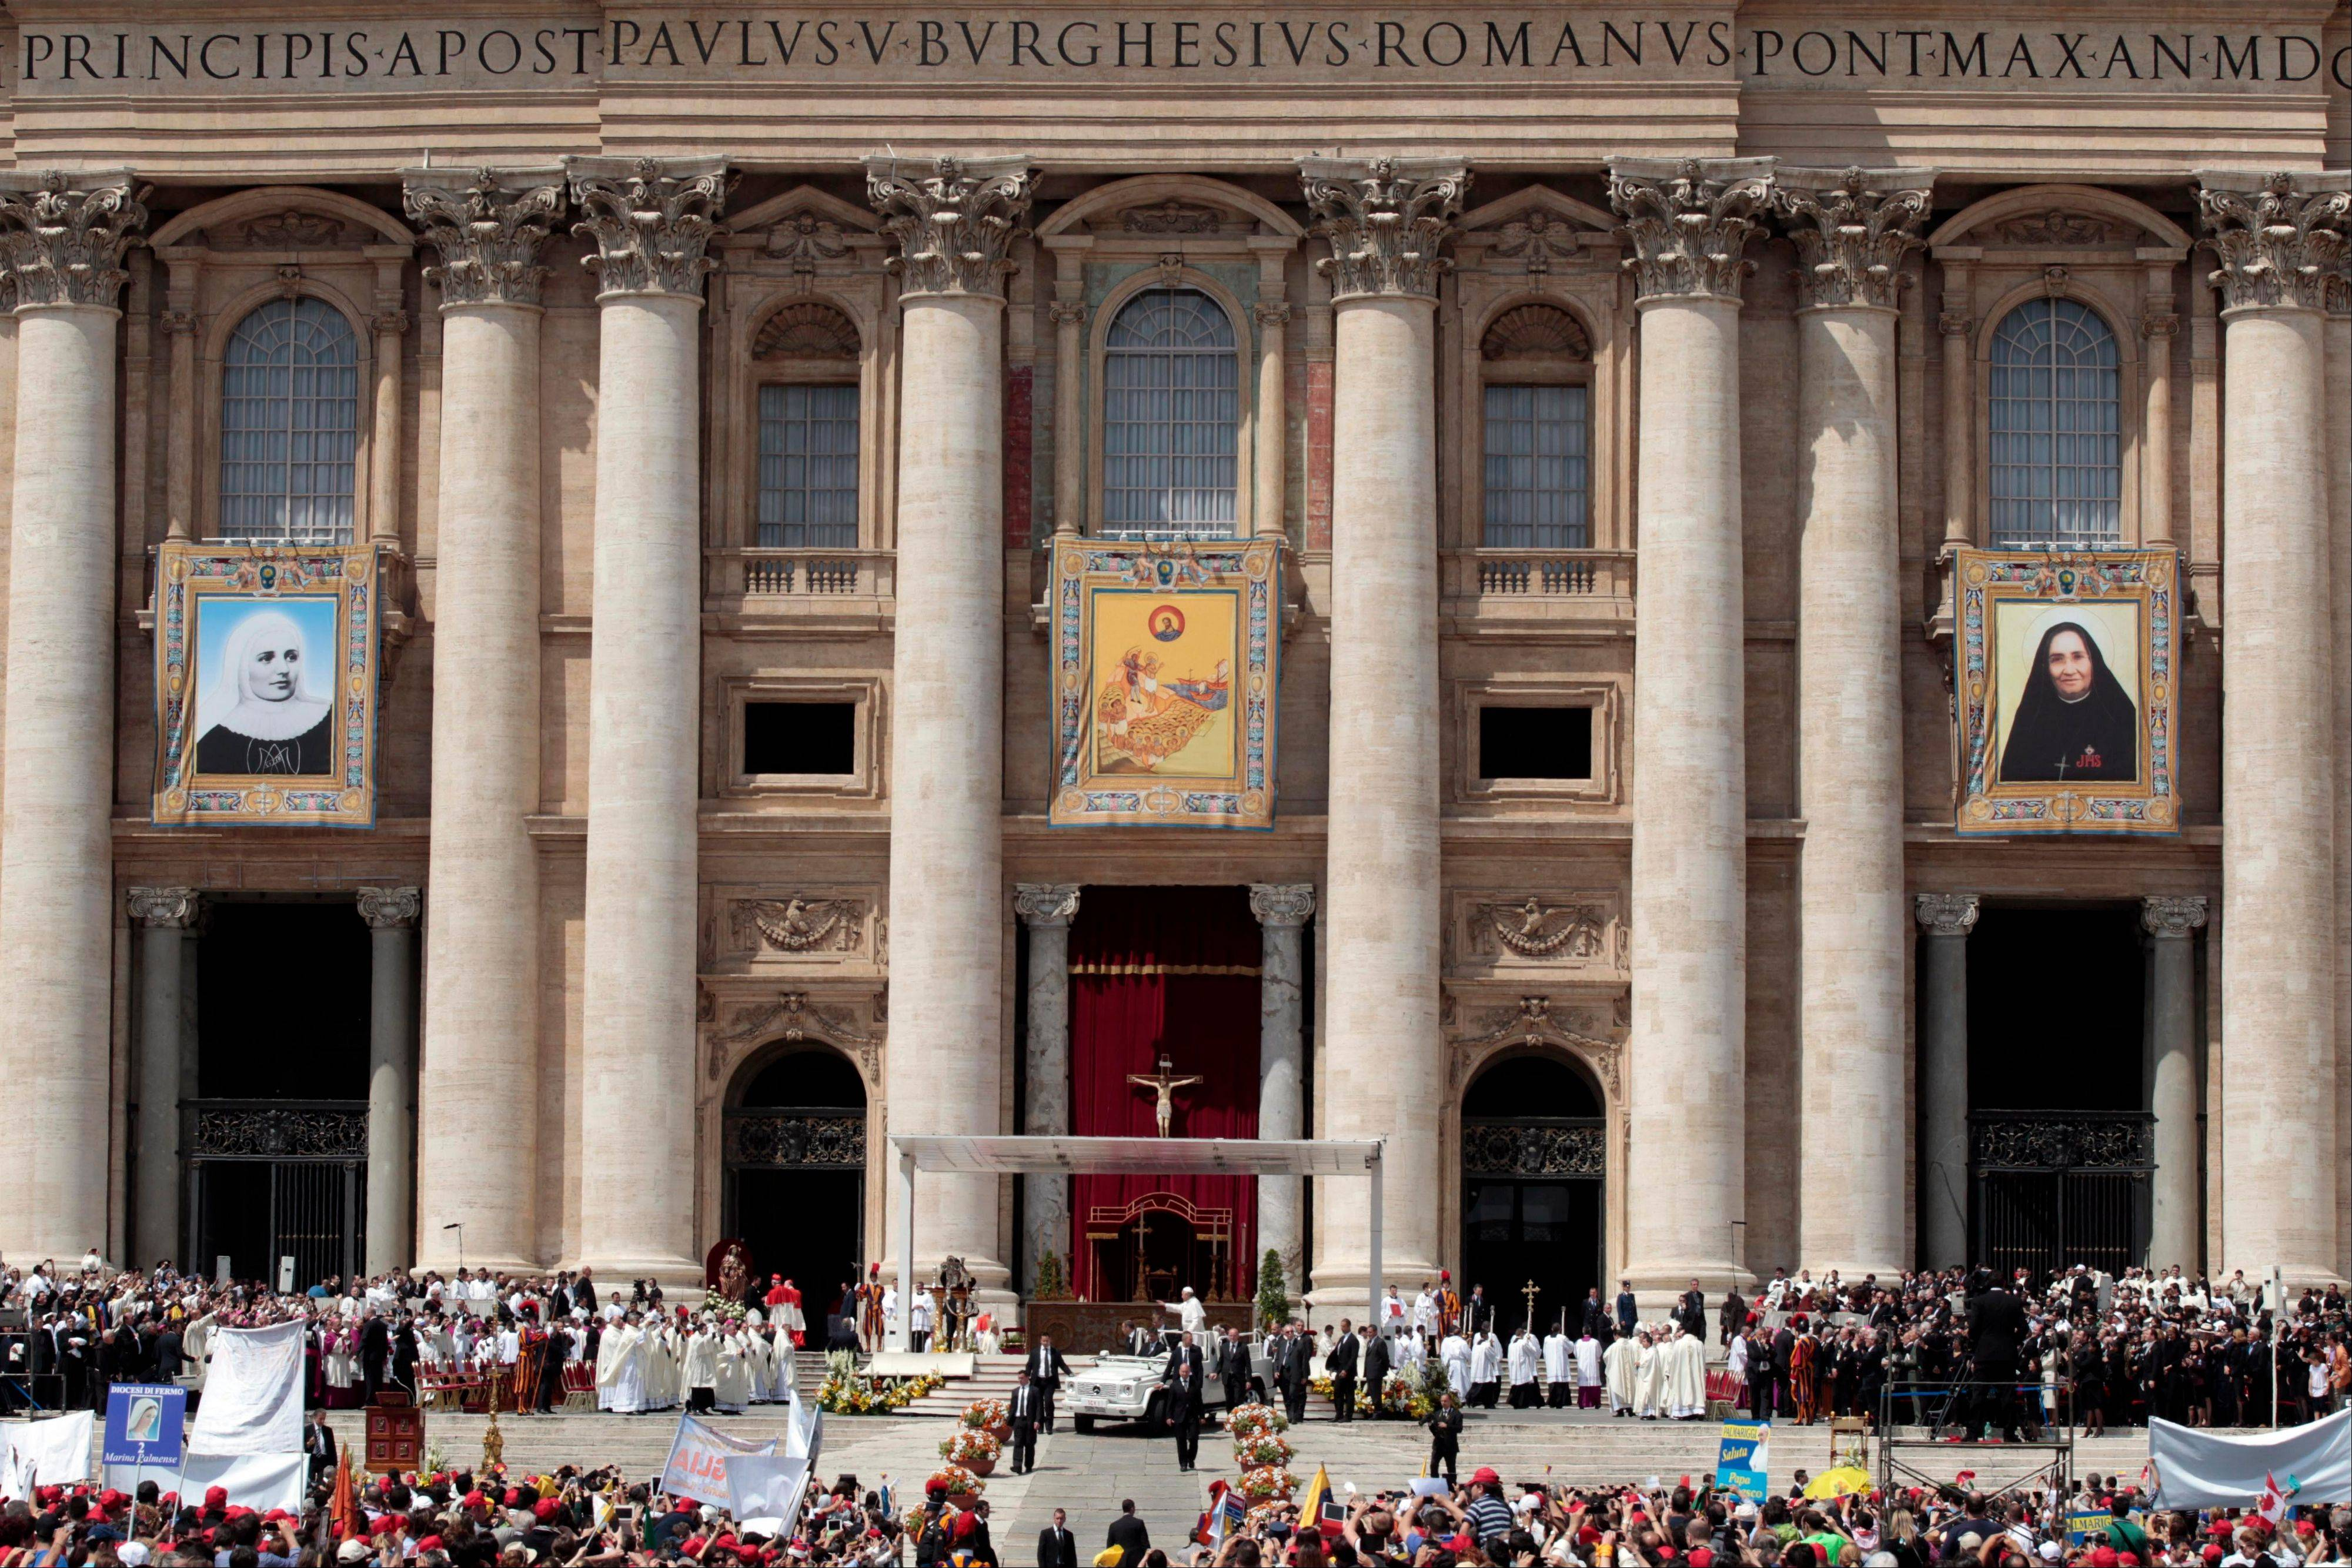 From left, the tapestries of Laura di Santa Caterina da Siena Montoya of Colombia, Antonio Primaldo and his companions, also known as the Martyrs of Otranto, and Maria Guadalupe Garcia Zavala of Mexico, are displayed as Pope Francis, bottom center, leaves at the end of a canonization mass in St. Peter's Square at the Vatican, Sunday